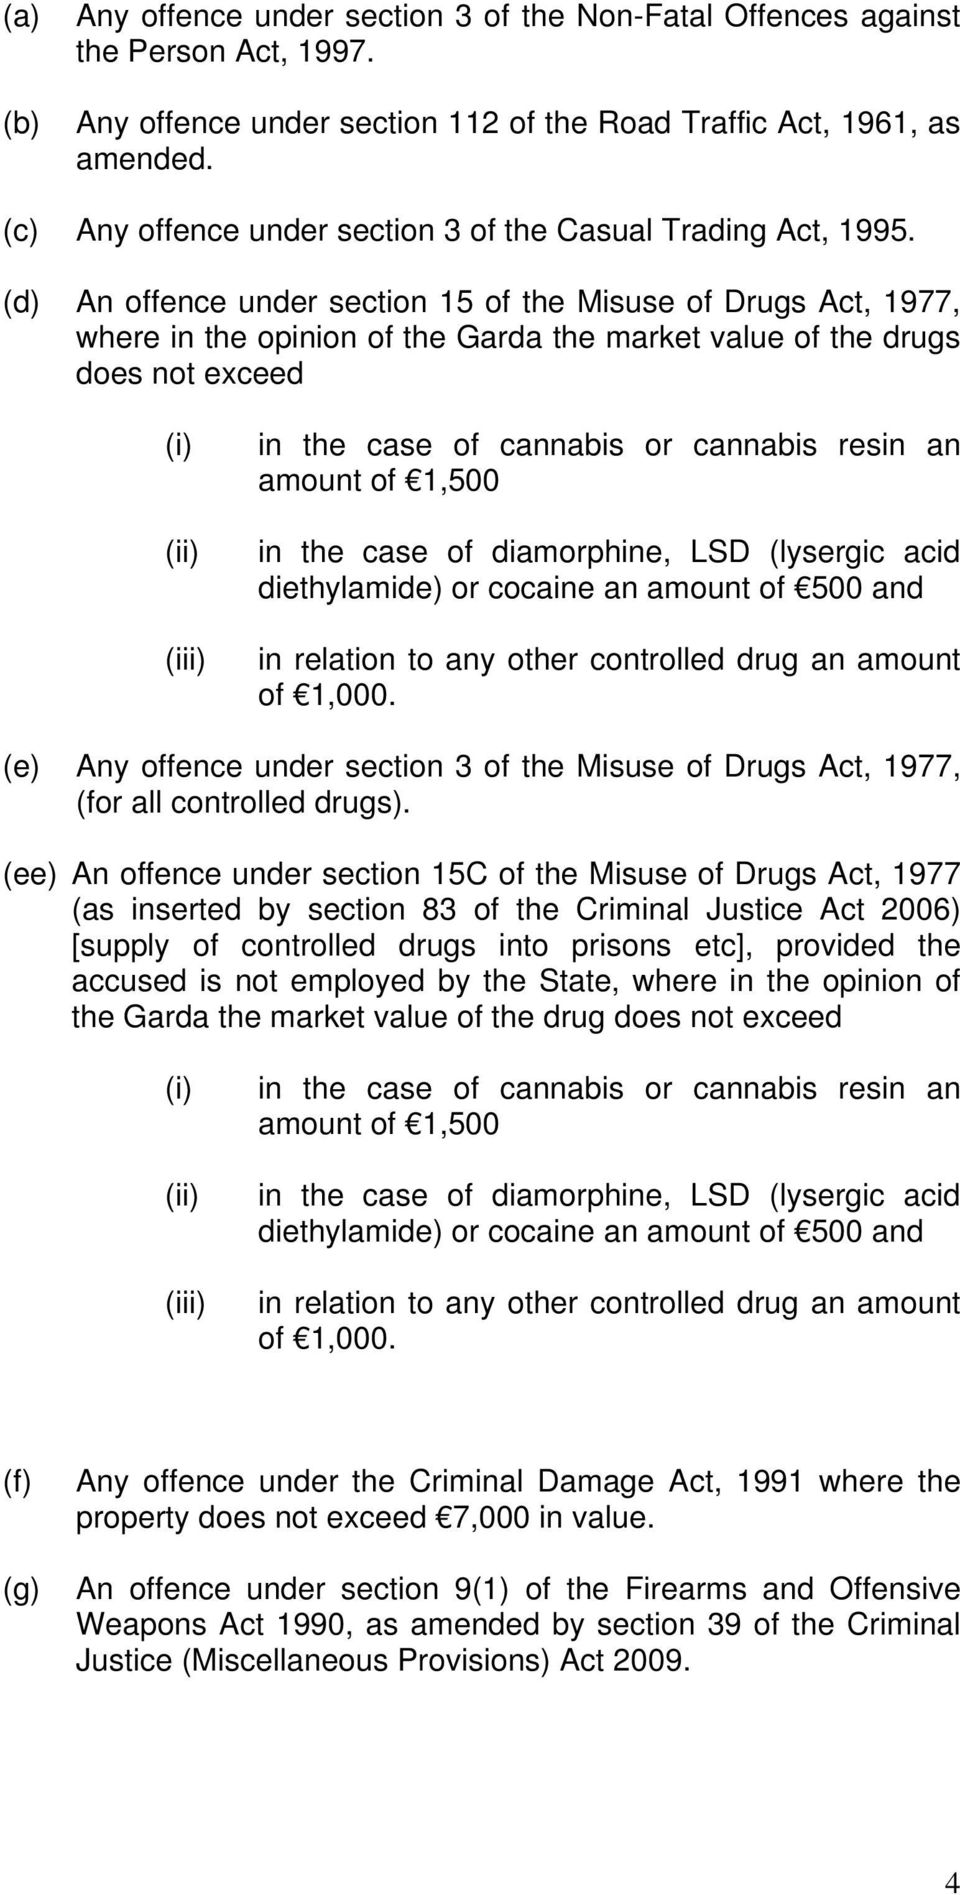 (d) An offence under section 15 of the Misuse of Drugs Act, 1977, where in the opinion of the Garda the market value of the drugs does not exceed (ii) (iii) in the case of cannabis or cannabis resin